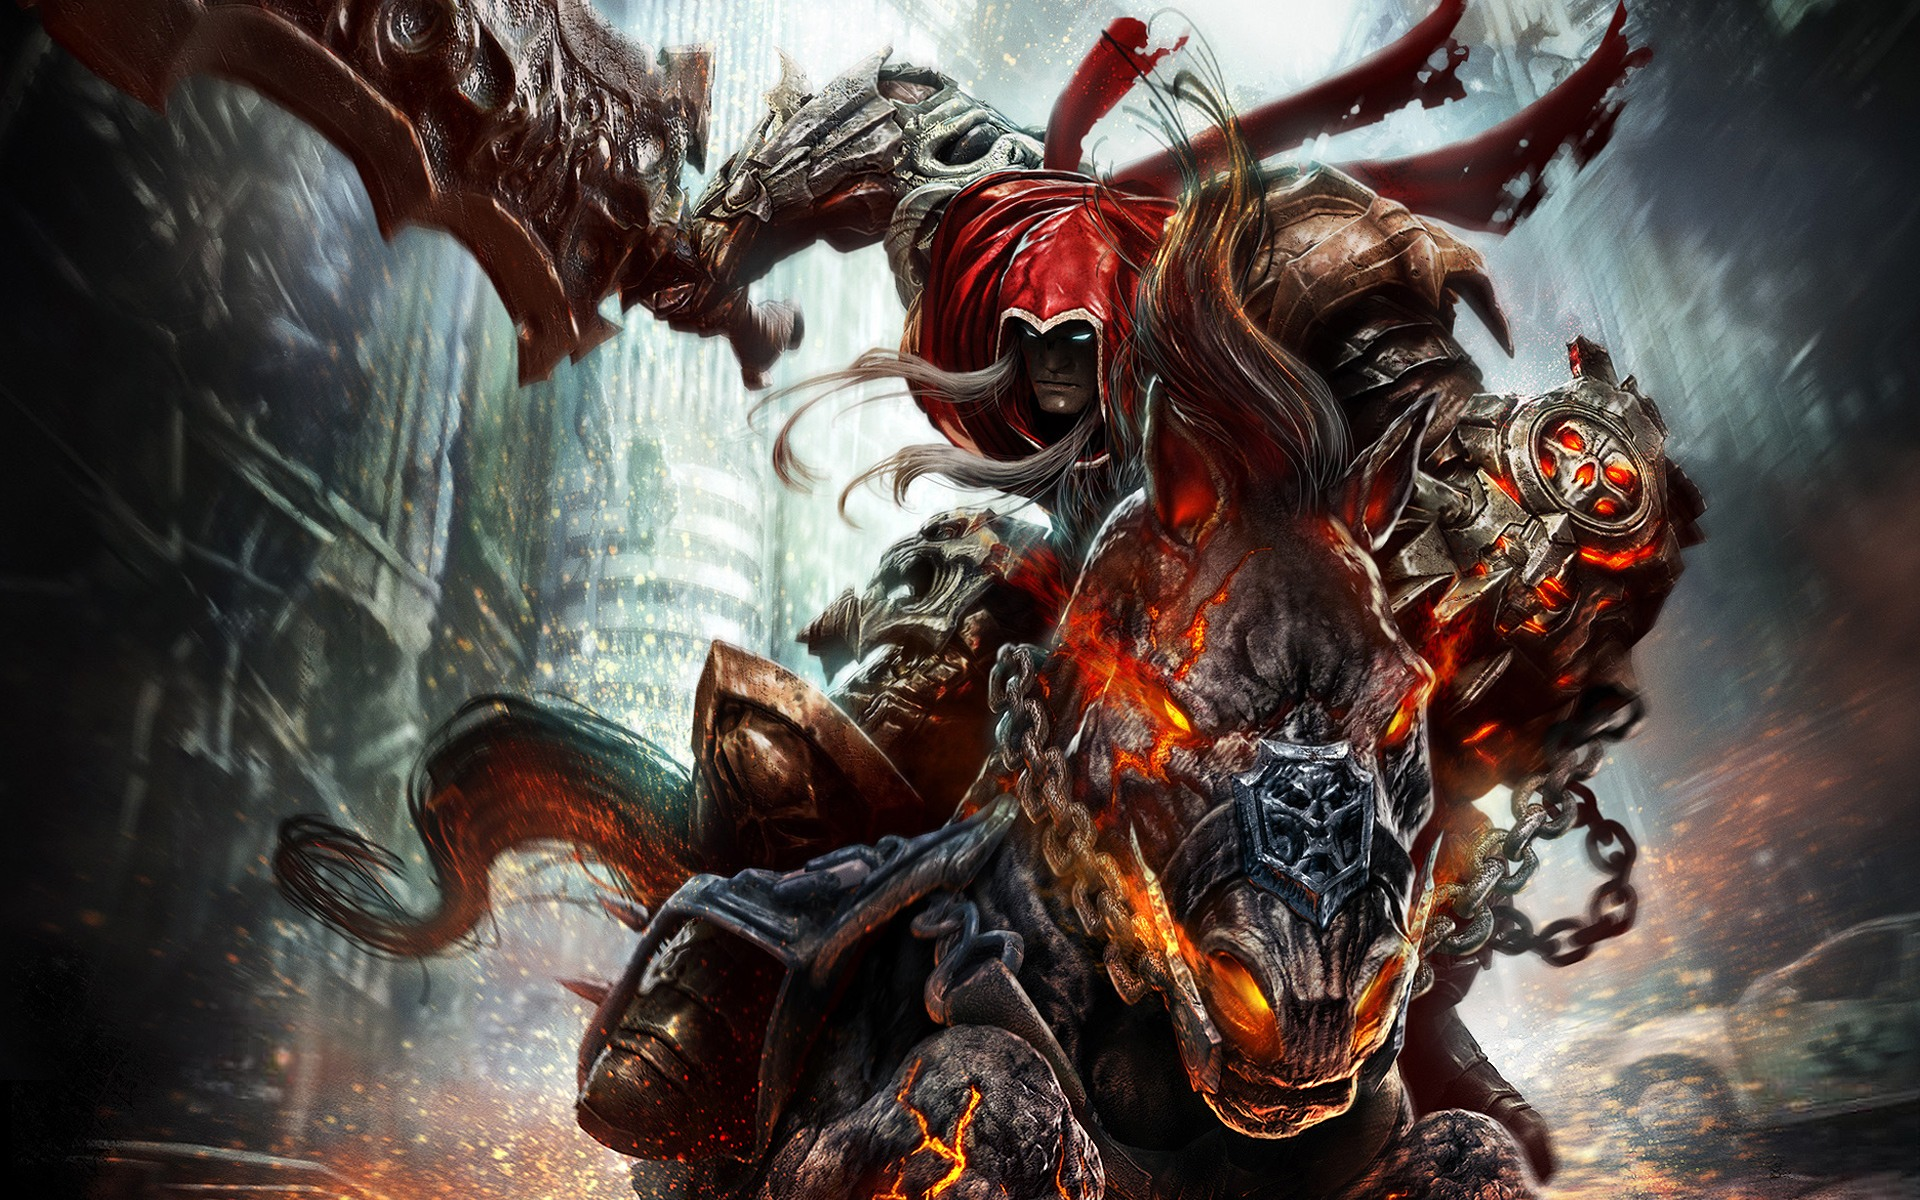 Canadian Online Gamers » Darksiders 3 May Have Just Inadvertently Been Leaked